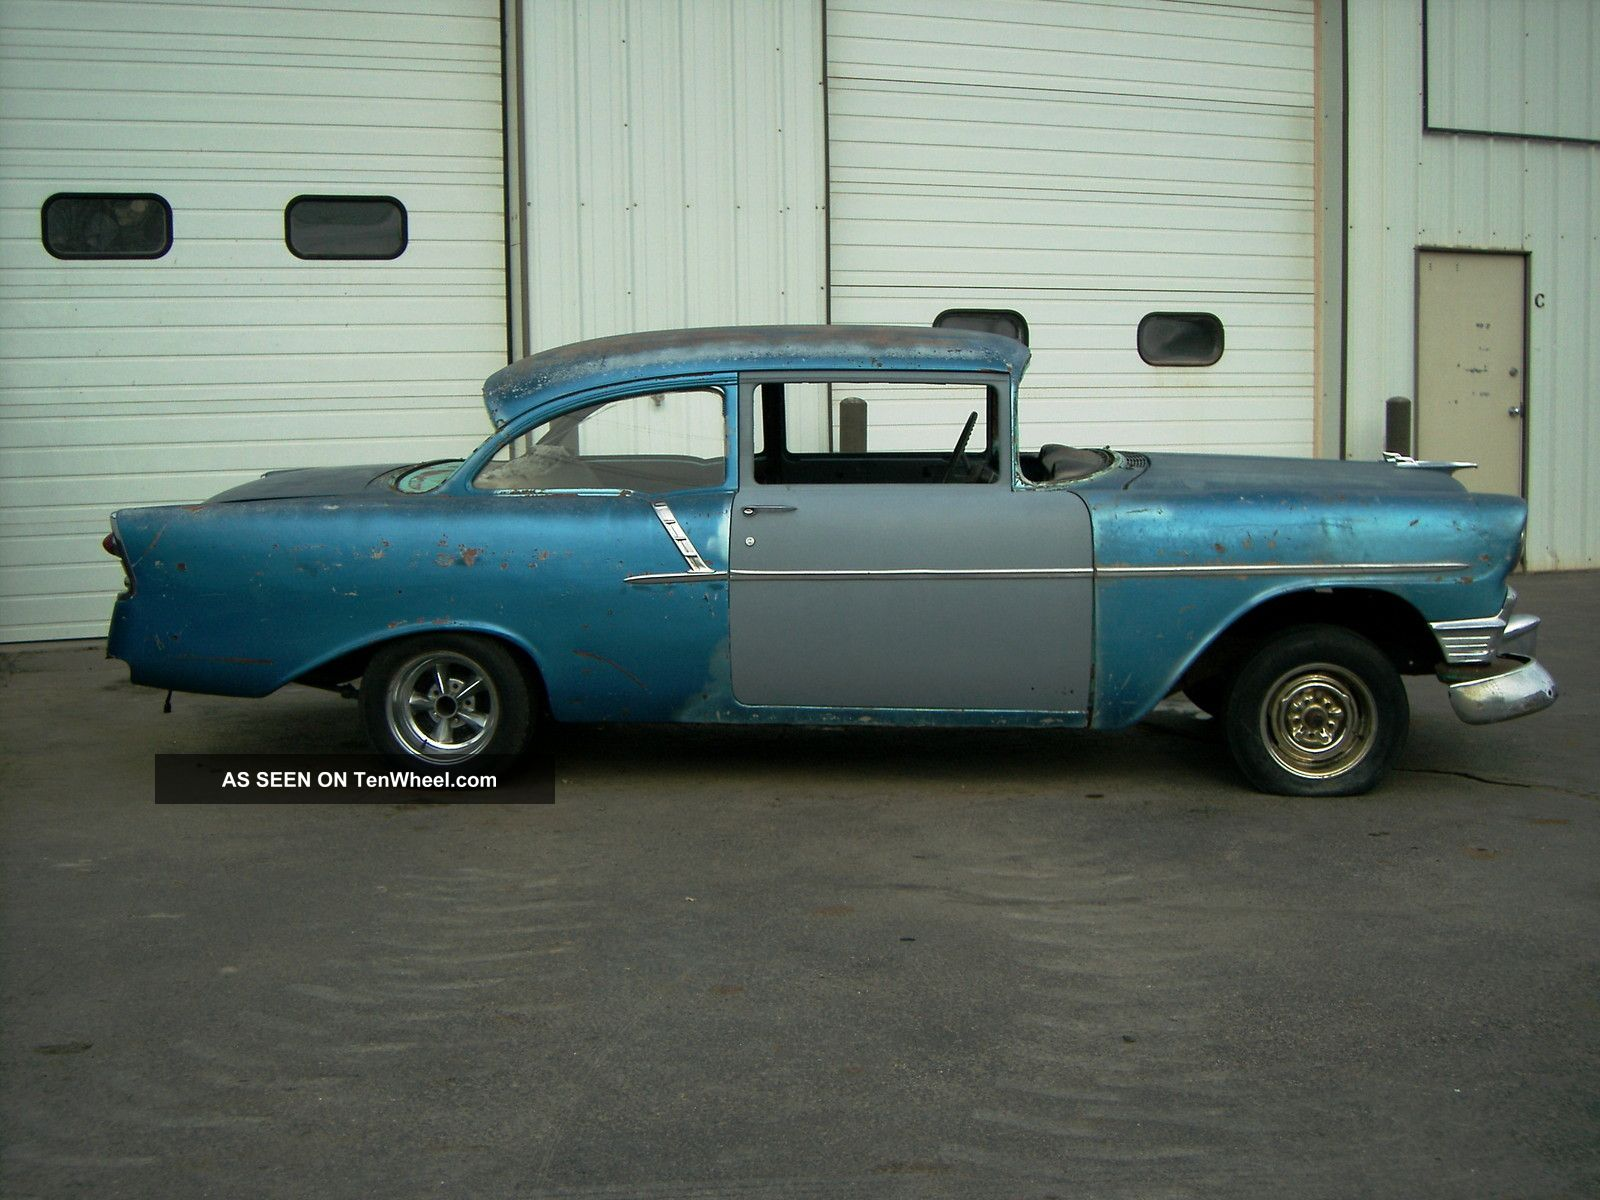 1956 chevrolet 150 2 door sedan 150 4 door sedan 2 cars for 1956 chevy 4 door